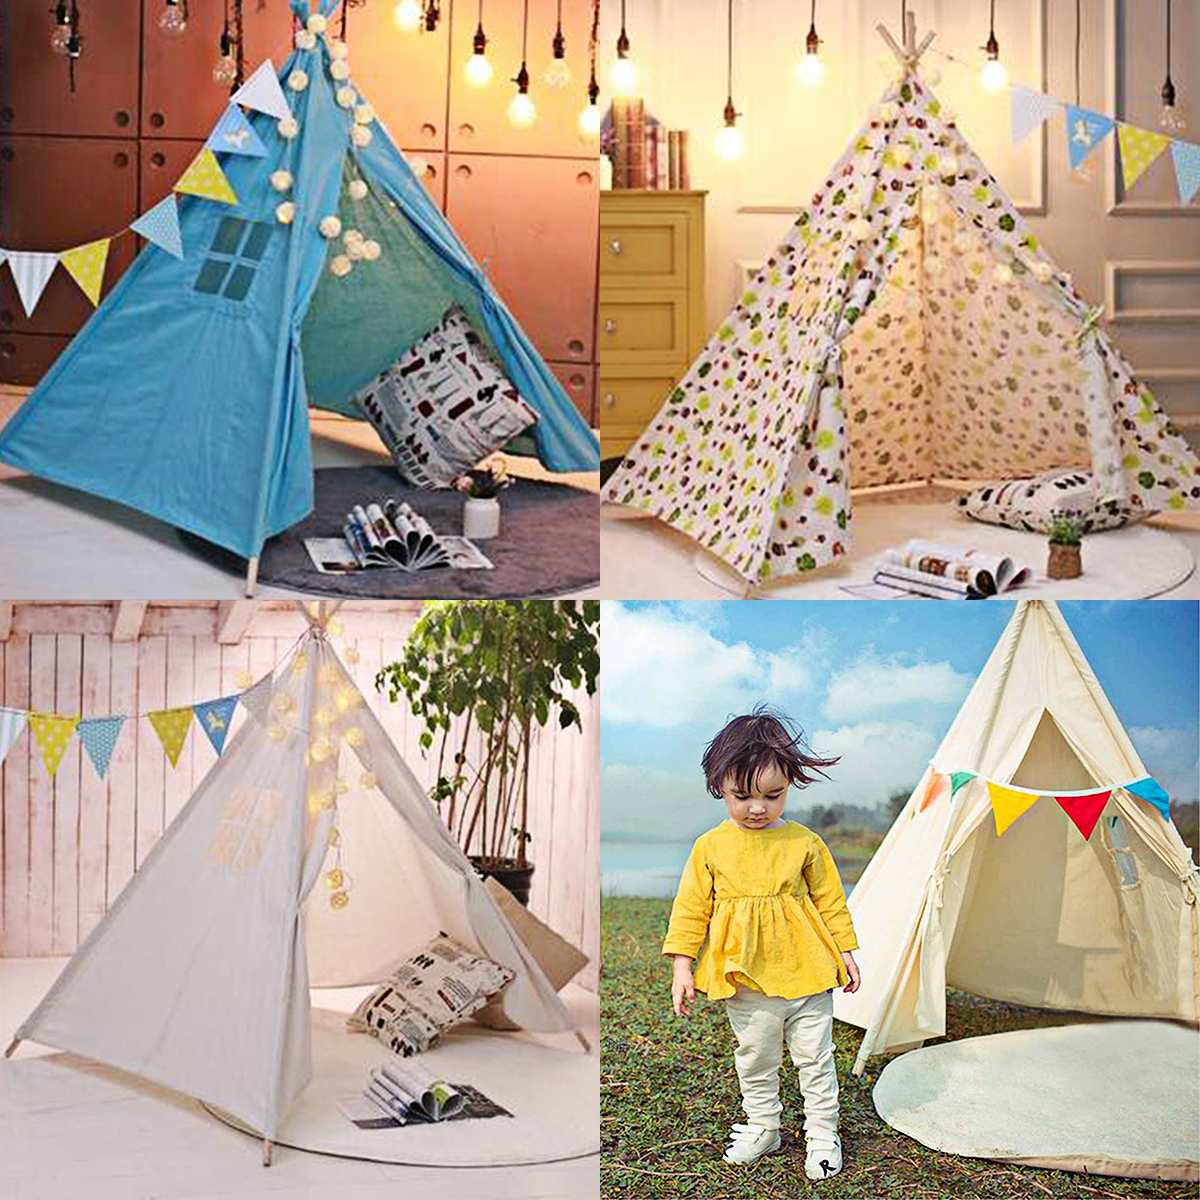 130cm/160cm Teepee Large Cotton Linen Kids Teepee Canvas Playhouse Indian Play Tent House White Children Tipi Tee Pee Tent